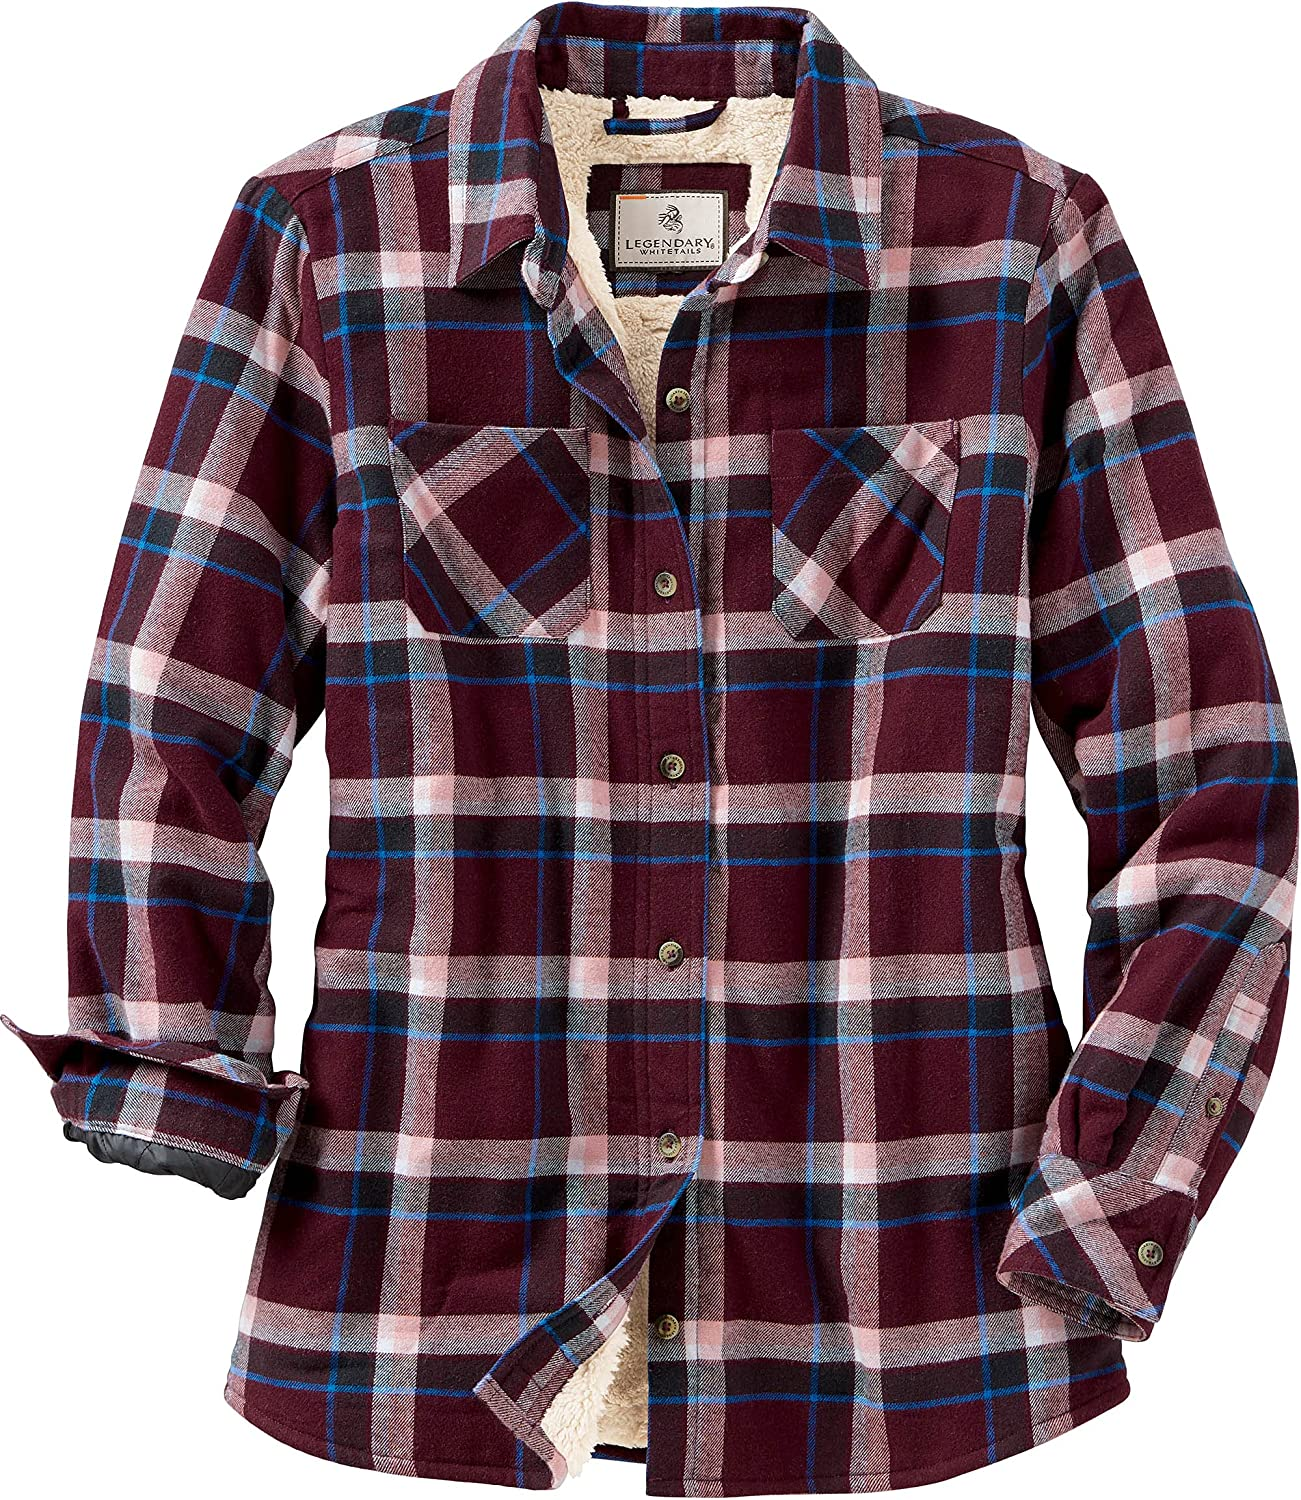 Legendary Whitetails Women's Open Country Plaid Shirt Jacket